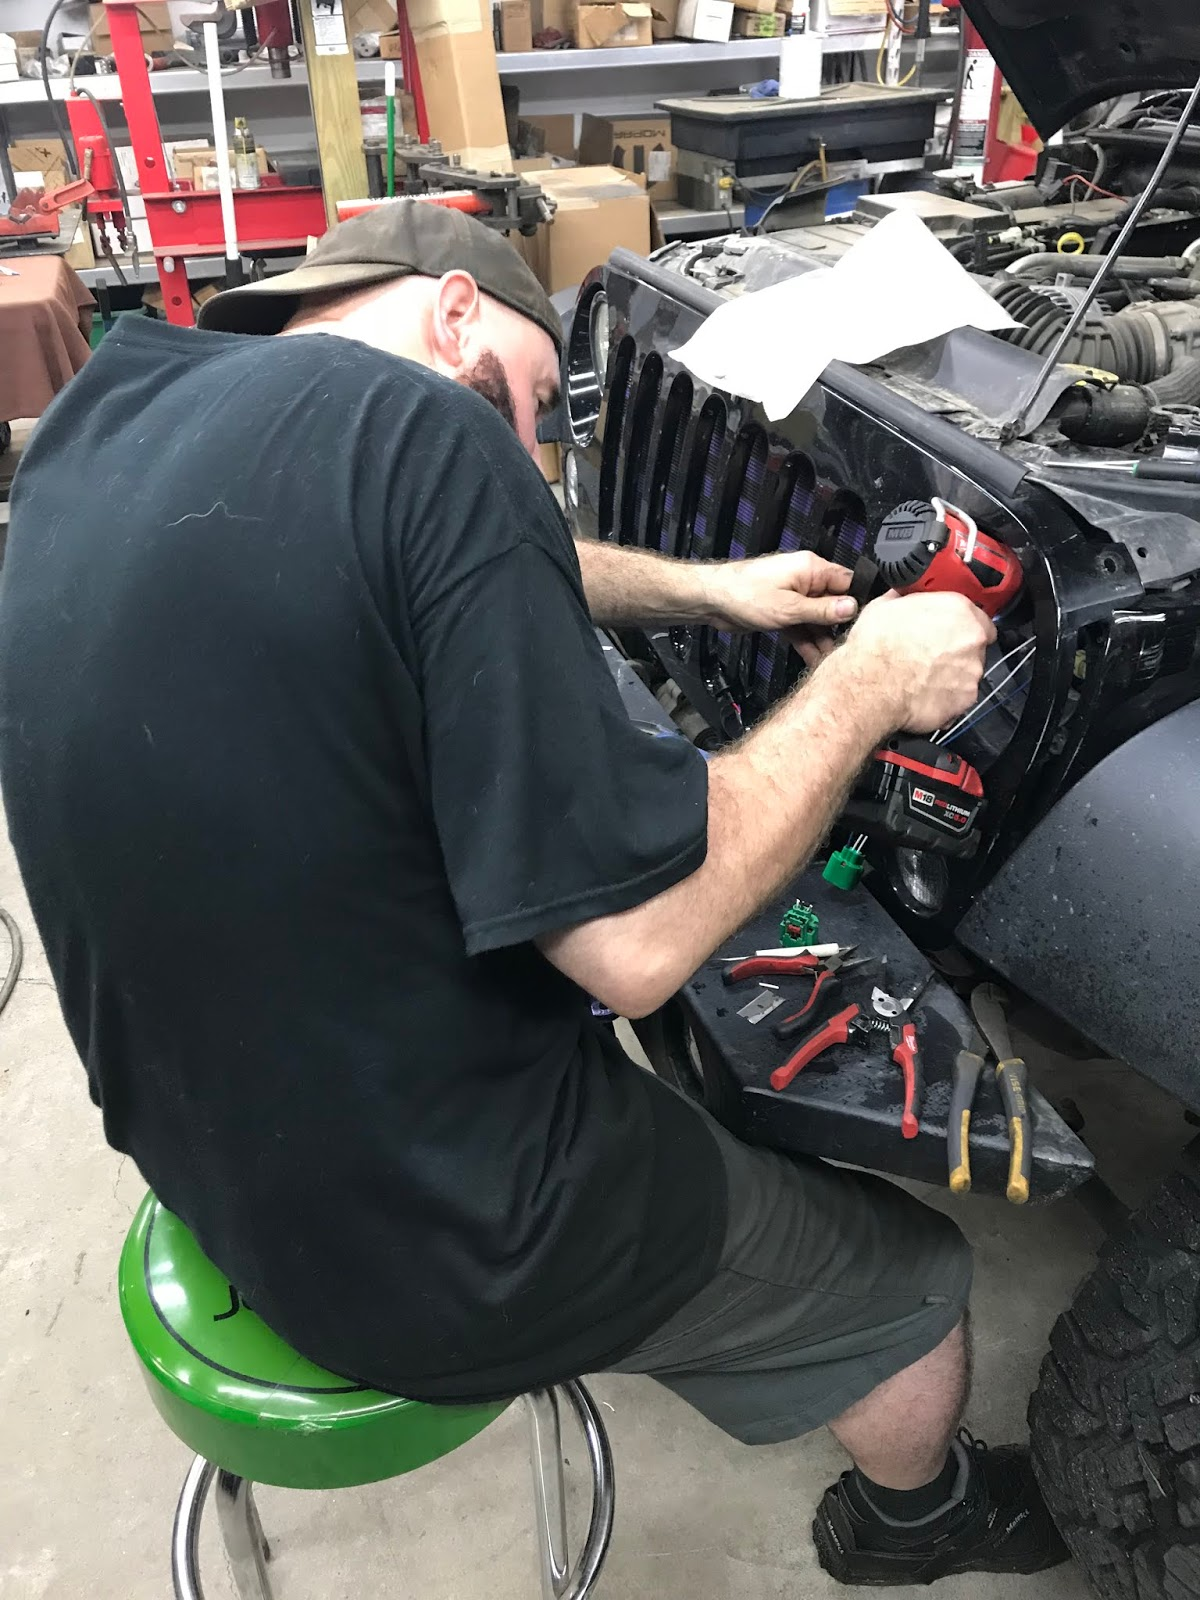 Jeep Momma Blog Fixed My Headlight I Hope The Factory Wiring Or Po Of Our Headlights Before Jeff Had Ordered And Plug However Mike Mechanic Who Does Most Hands On Work Checked